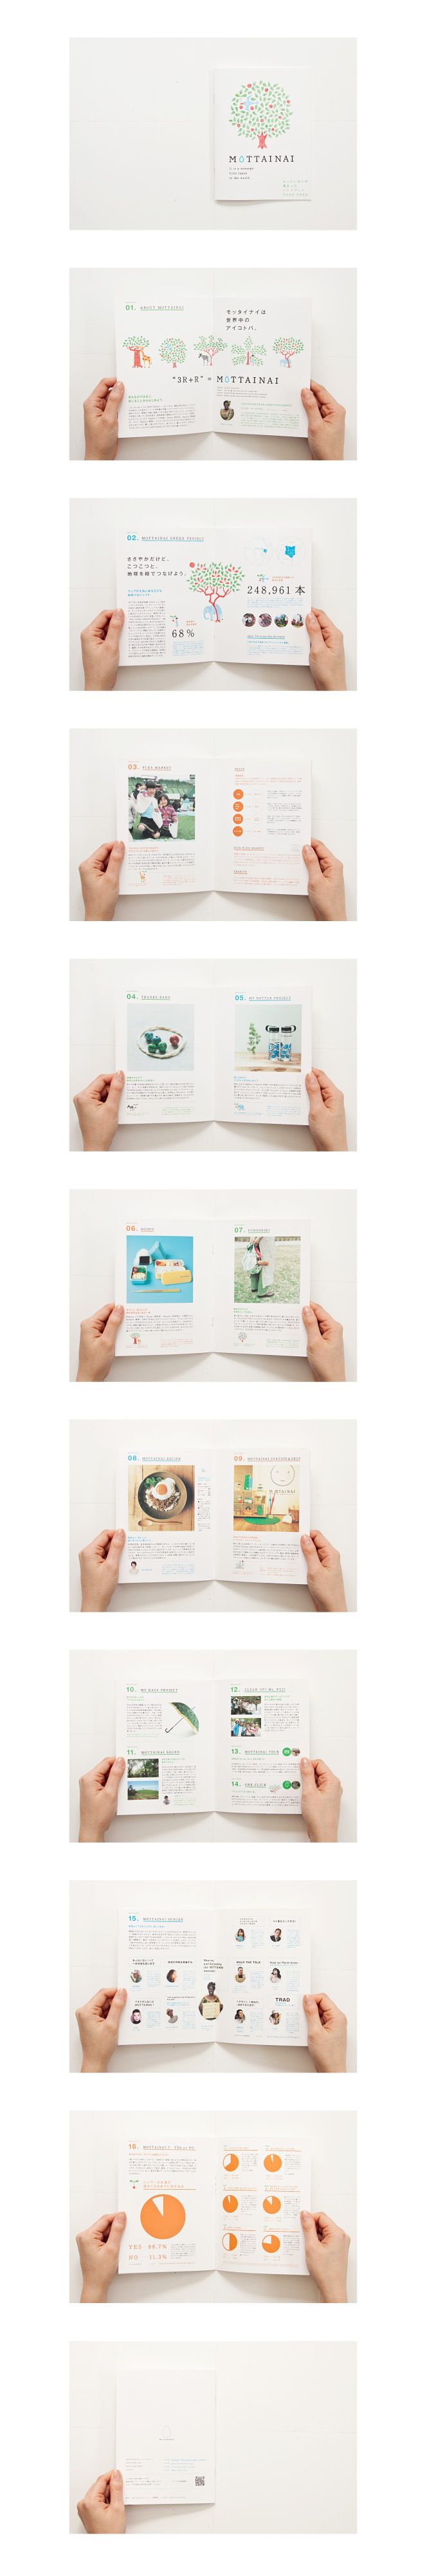 mottainai2011 book layout